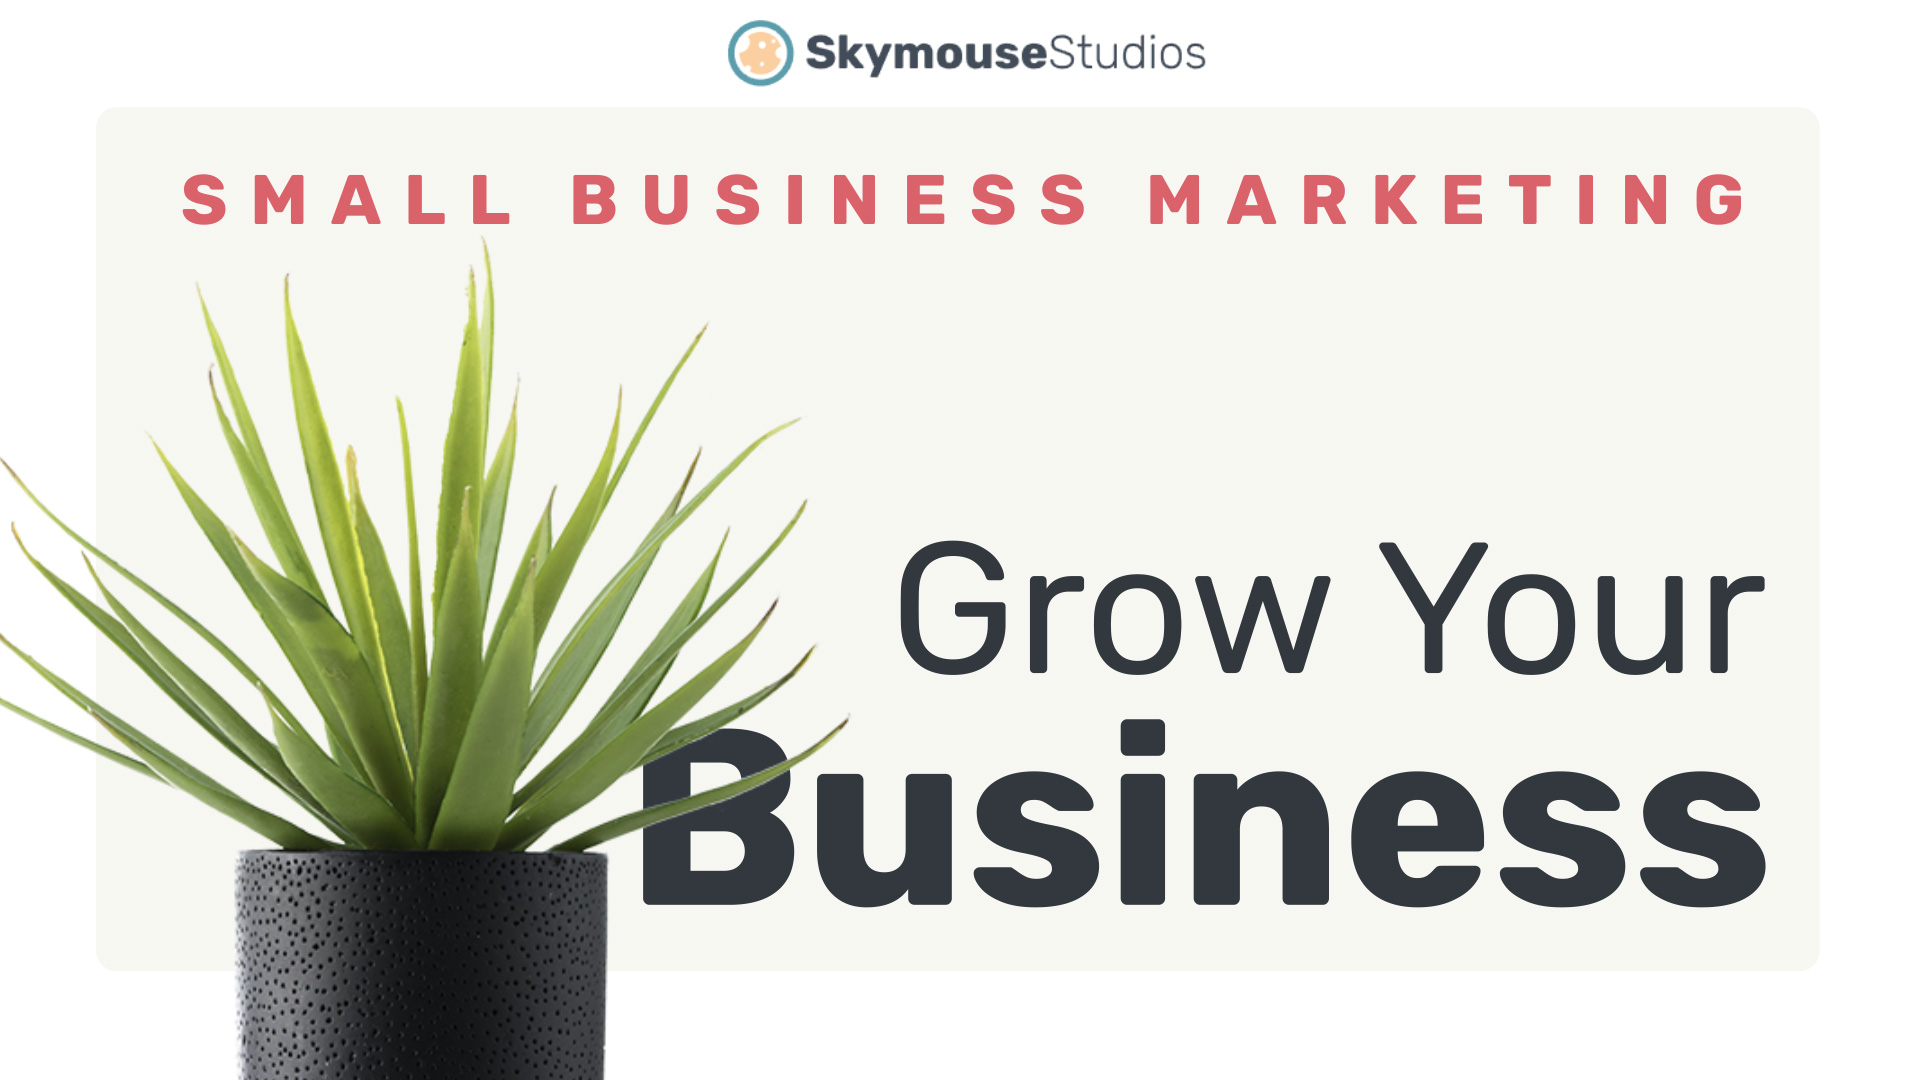 Create a KILLER marketing plan for a small business